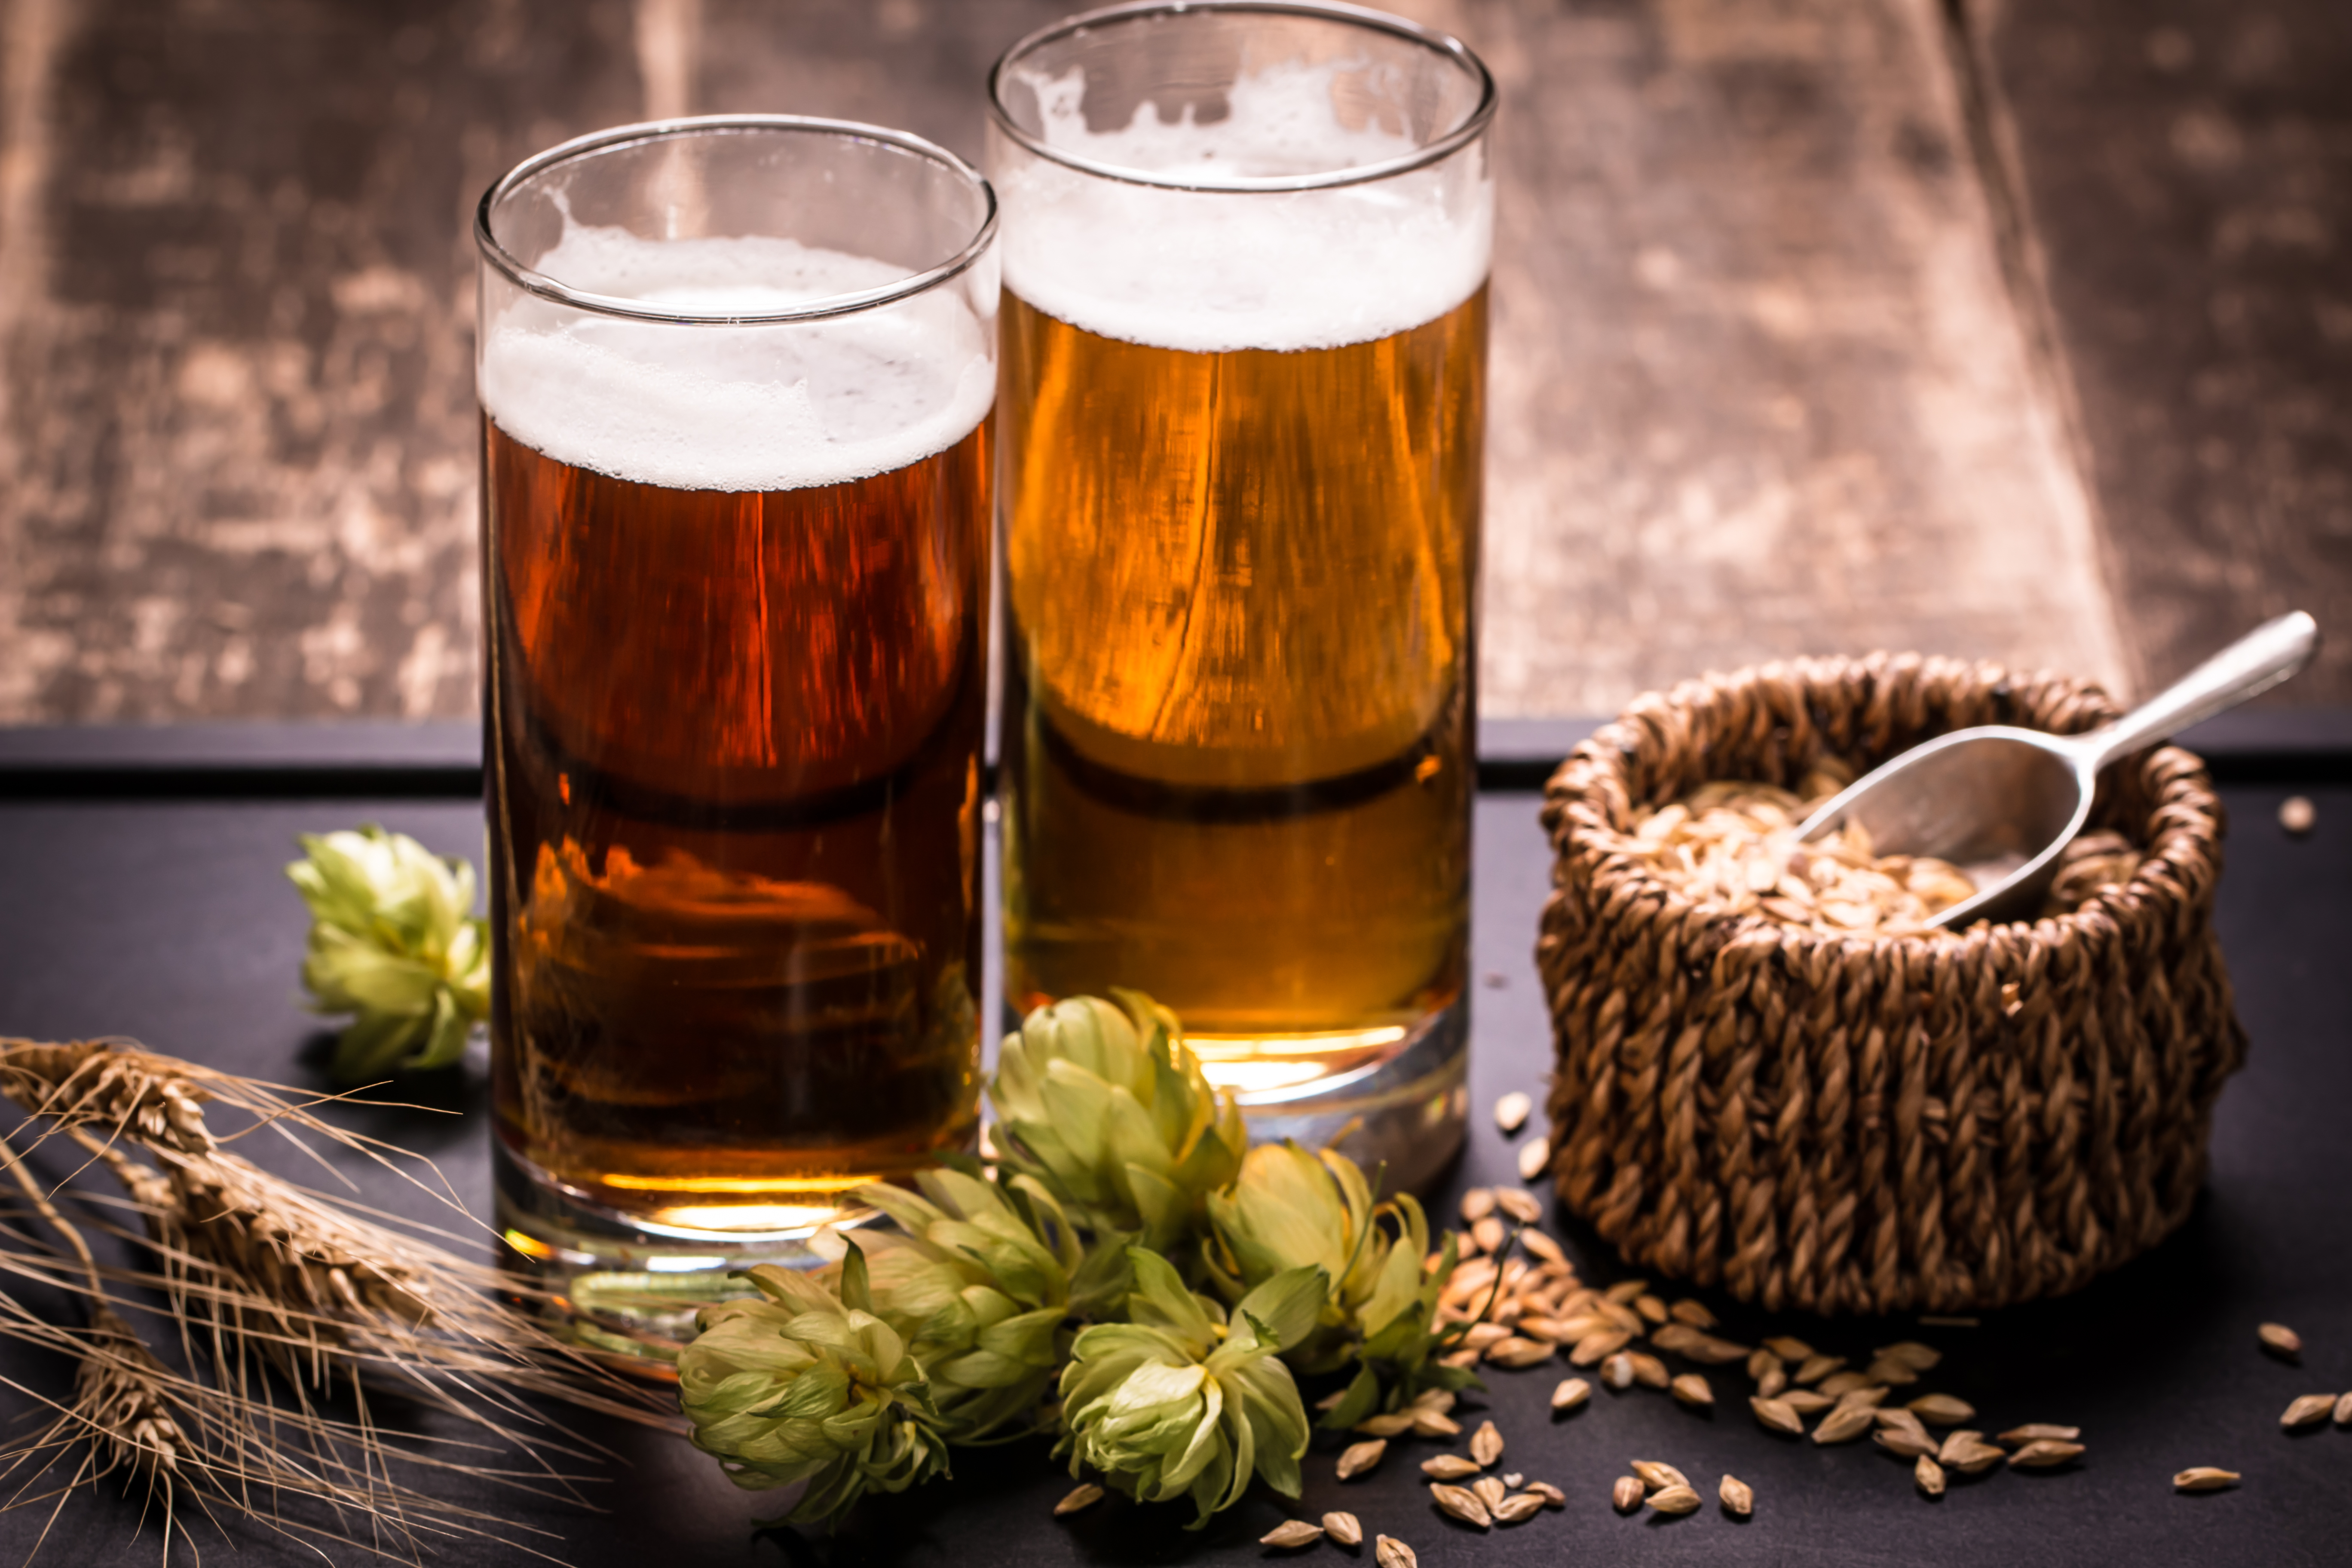 Craft Beer Brewery Tour in Green Bay Wisconsin